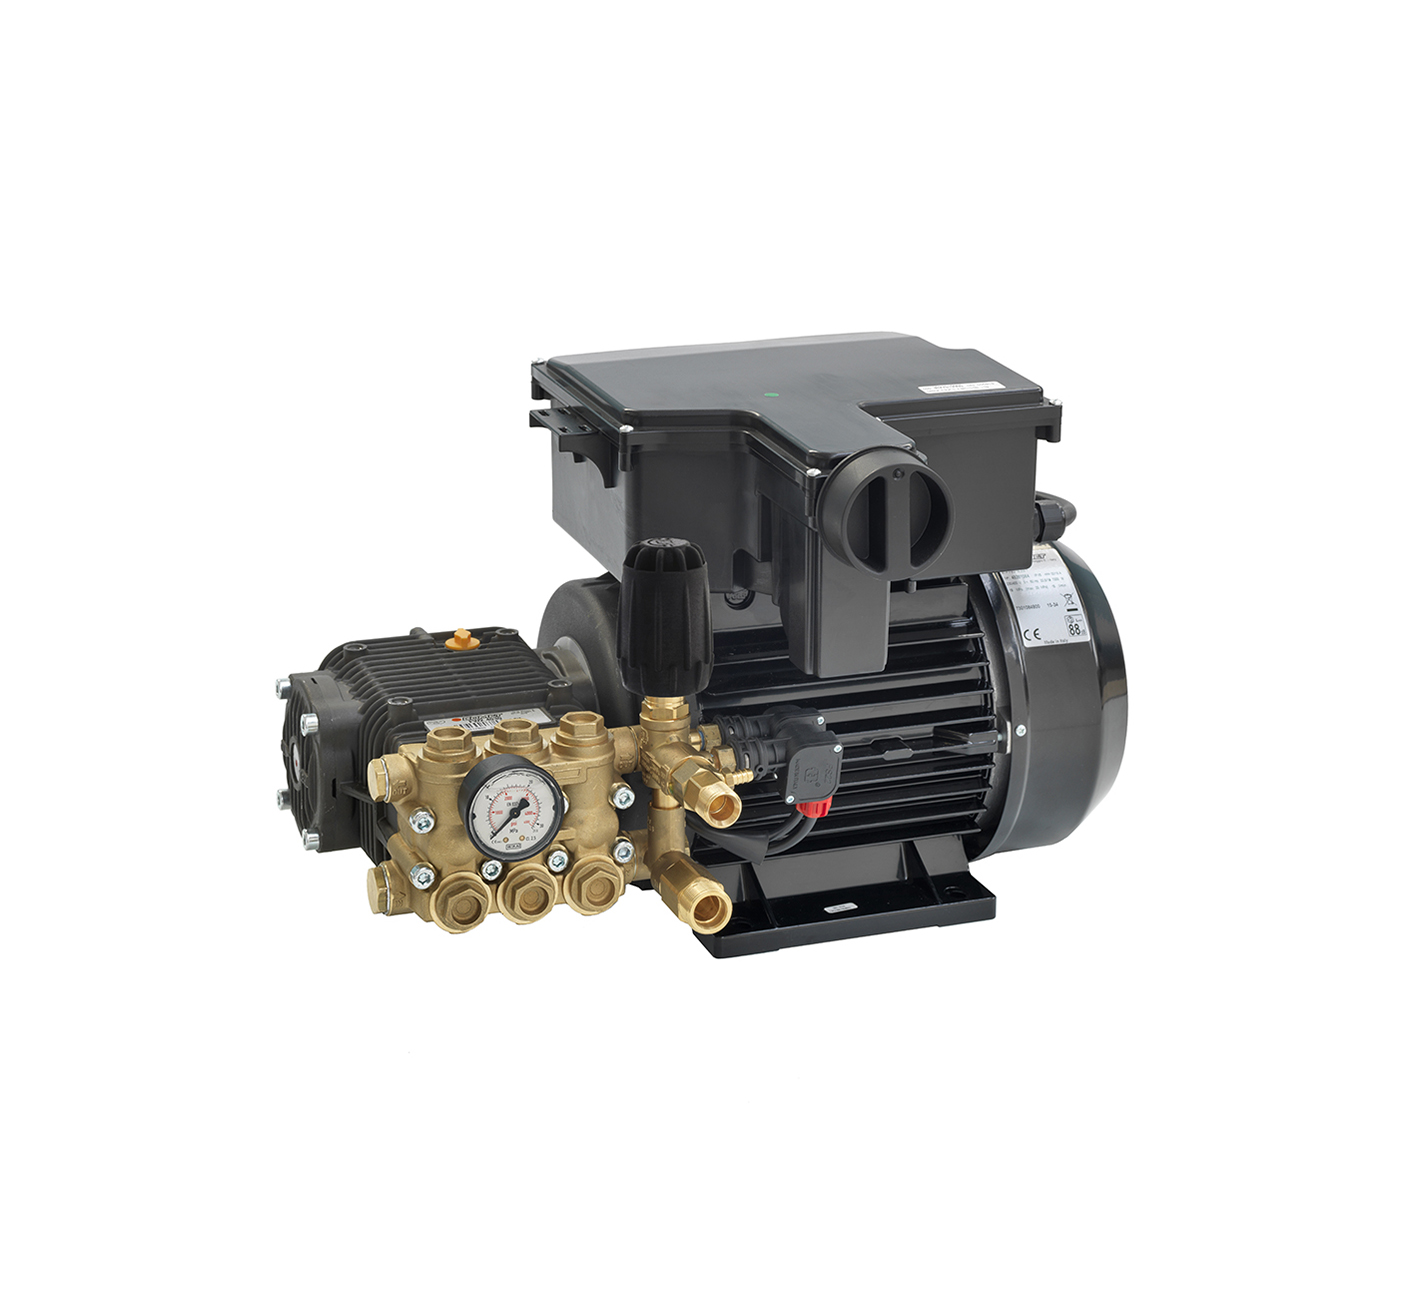 MTP FW2 Comet Industrial Pumps